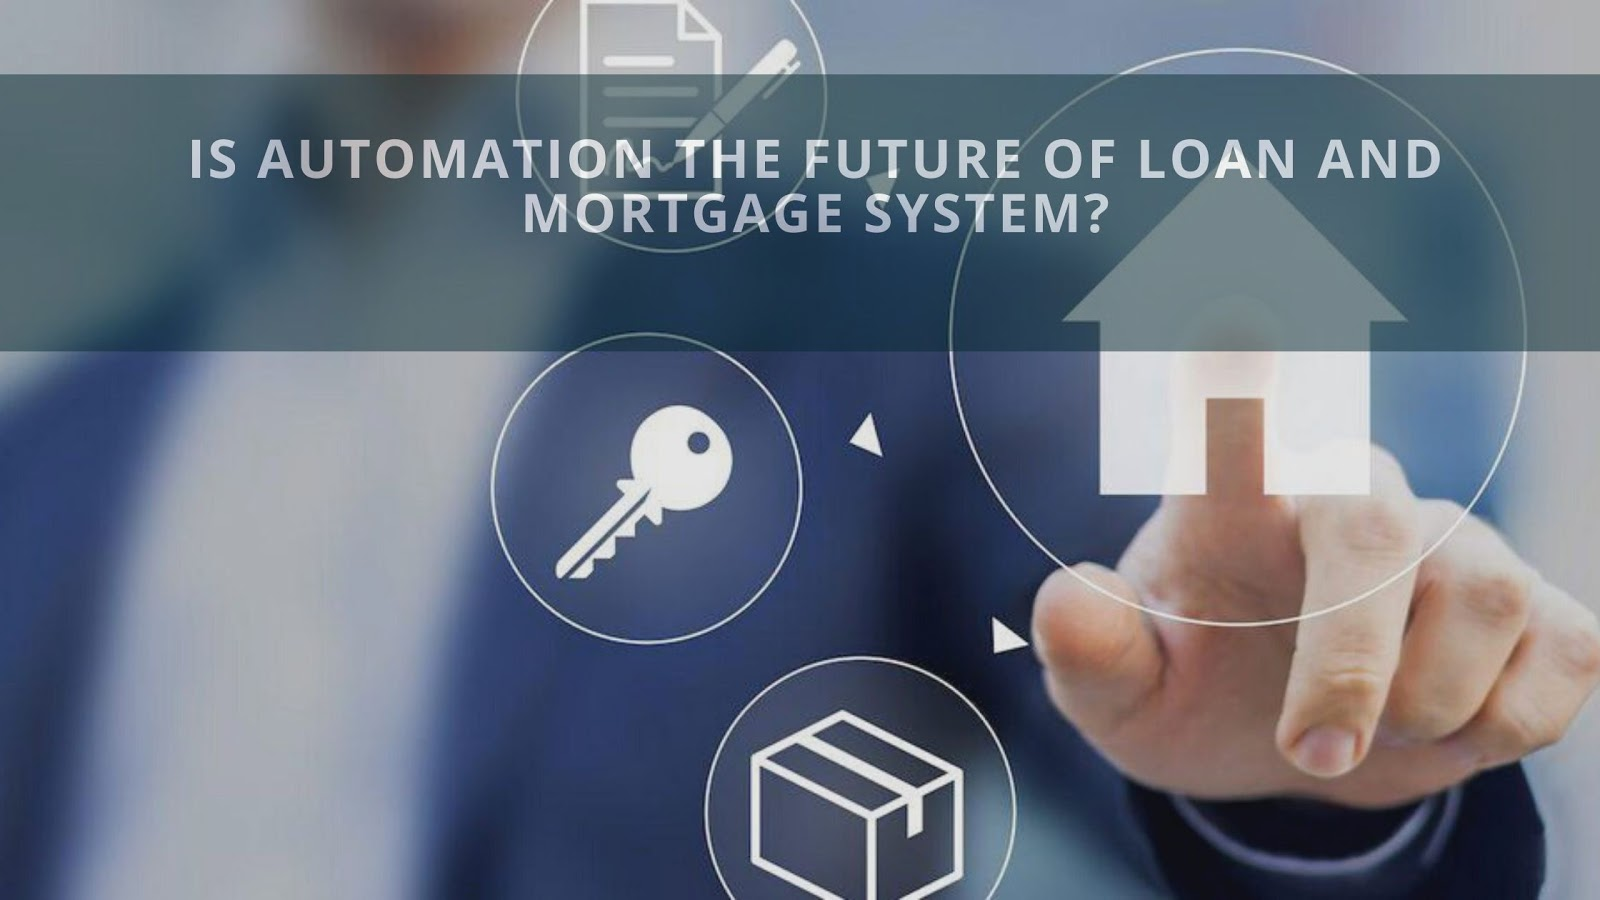 Is Automation The Future Of Loan And Mortgage System